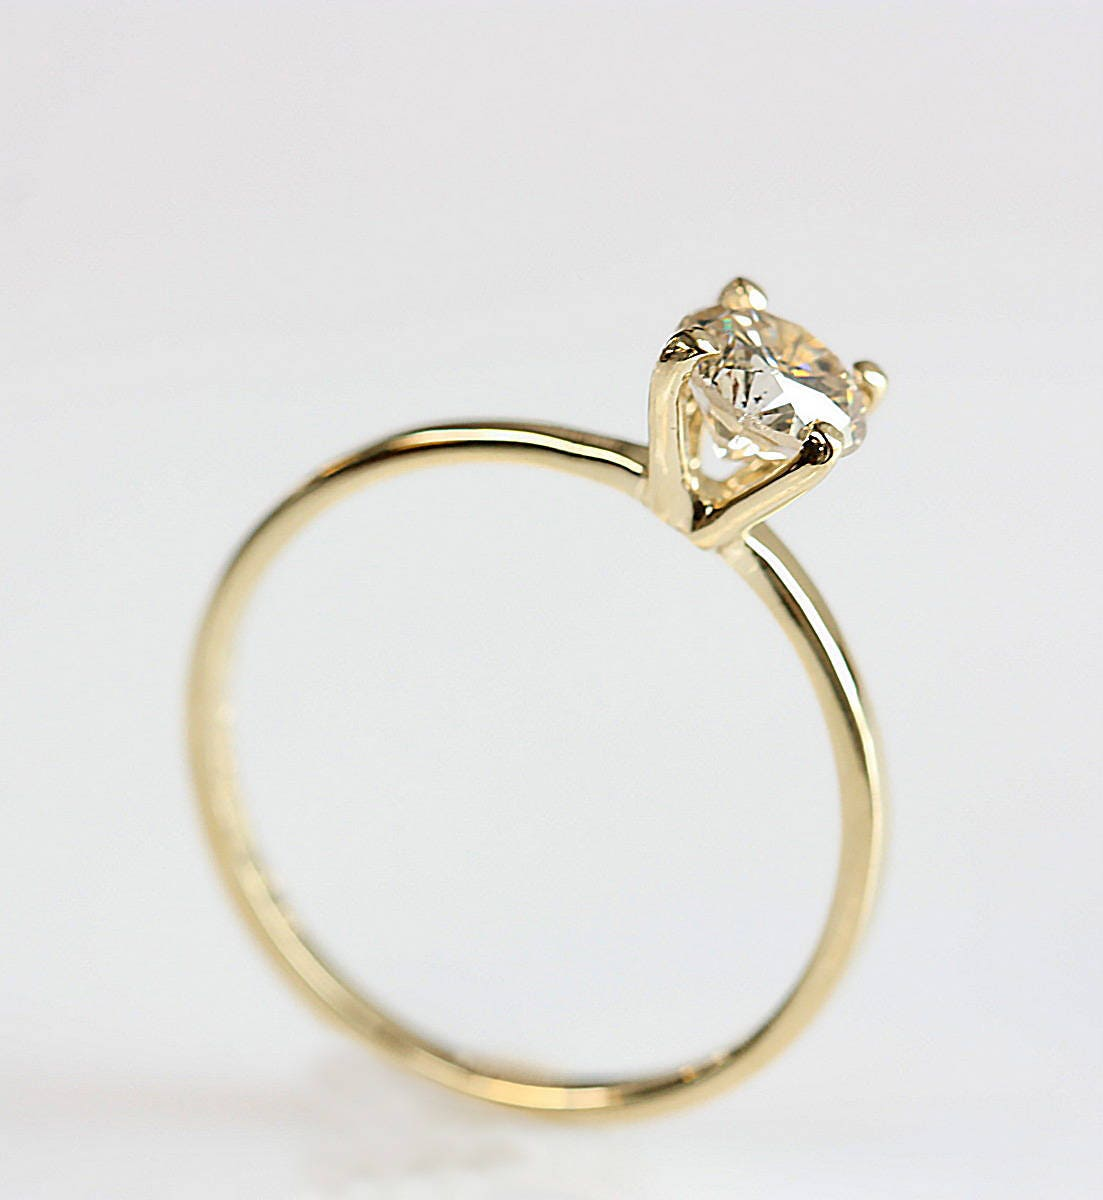 solitaire ring engagement ring 14 k yellow gold